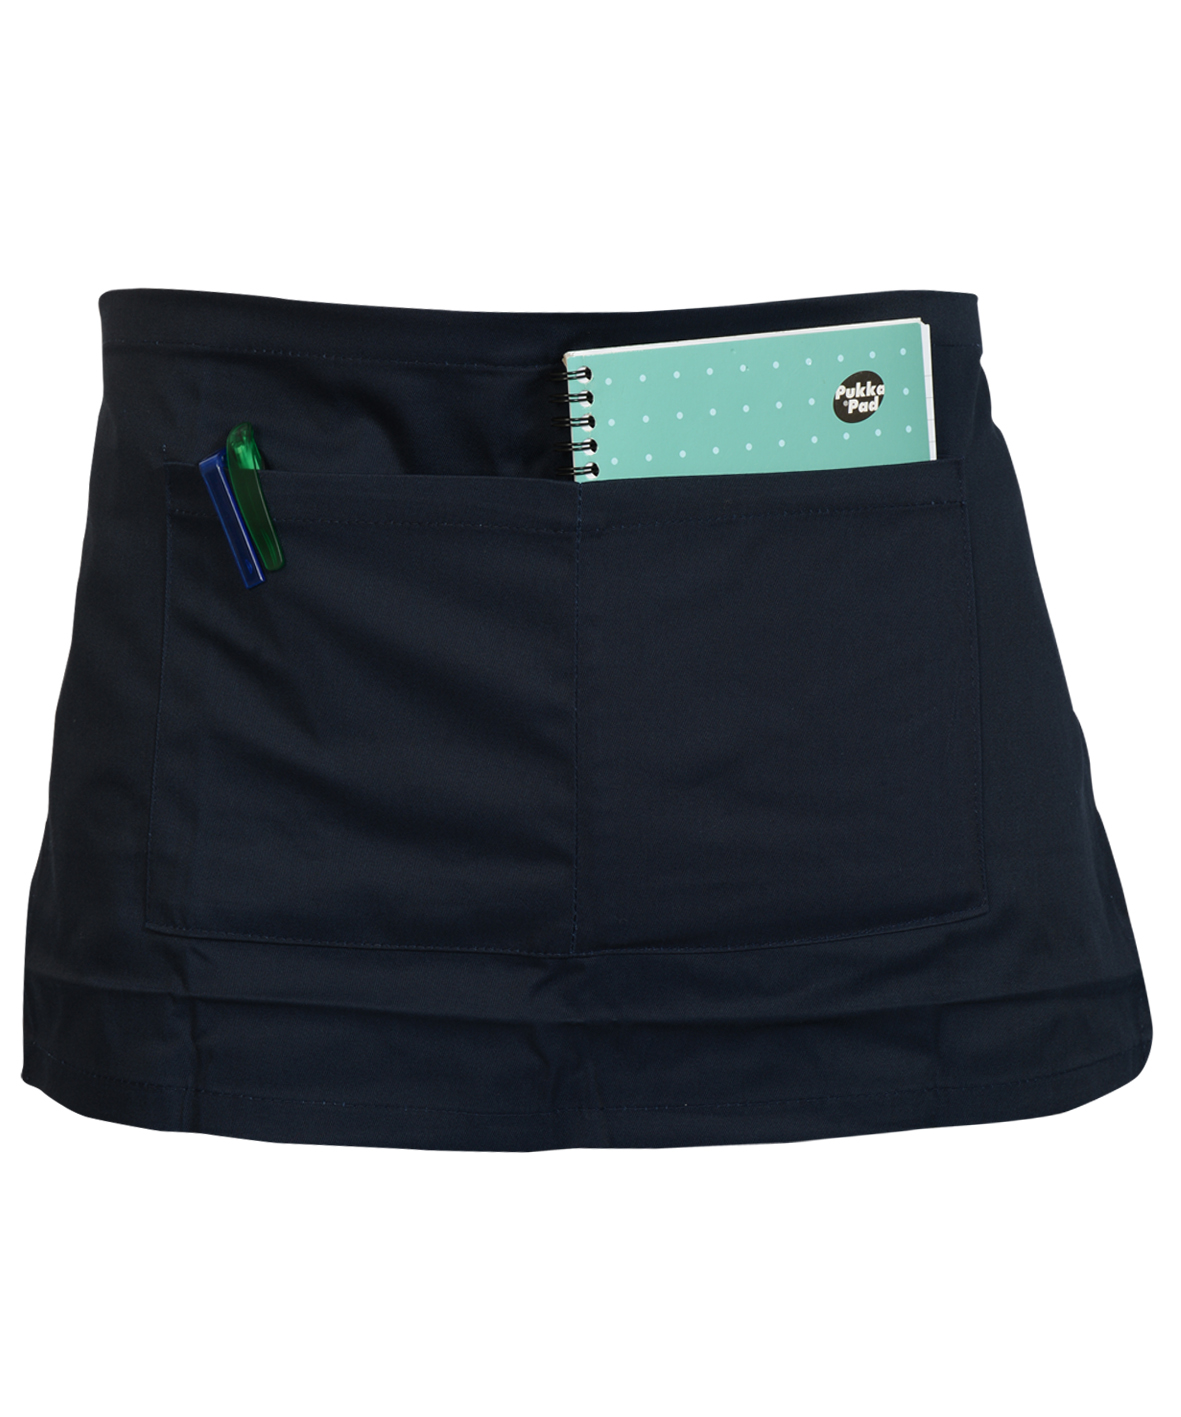 Absolute Apparel Waist Apron With Pocket